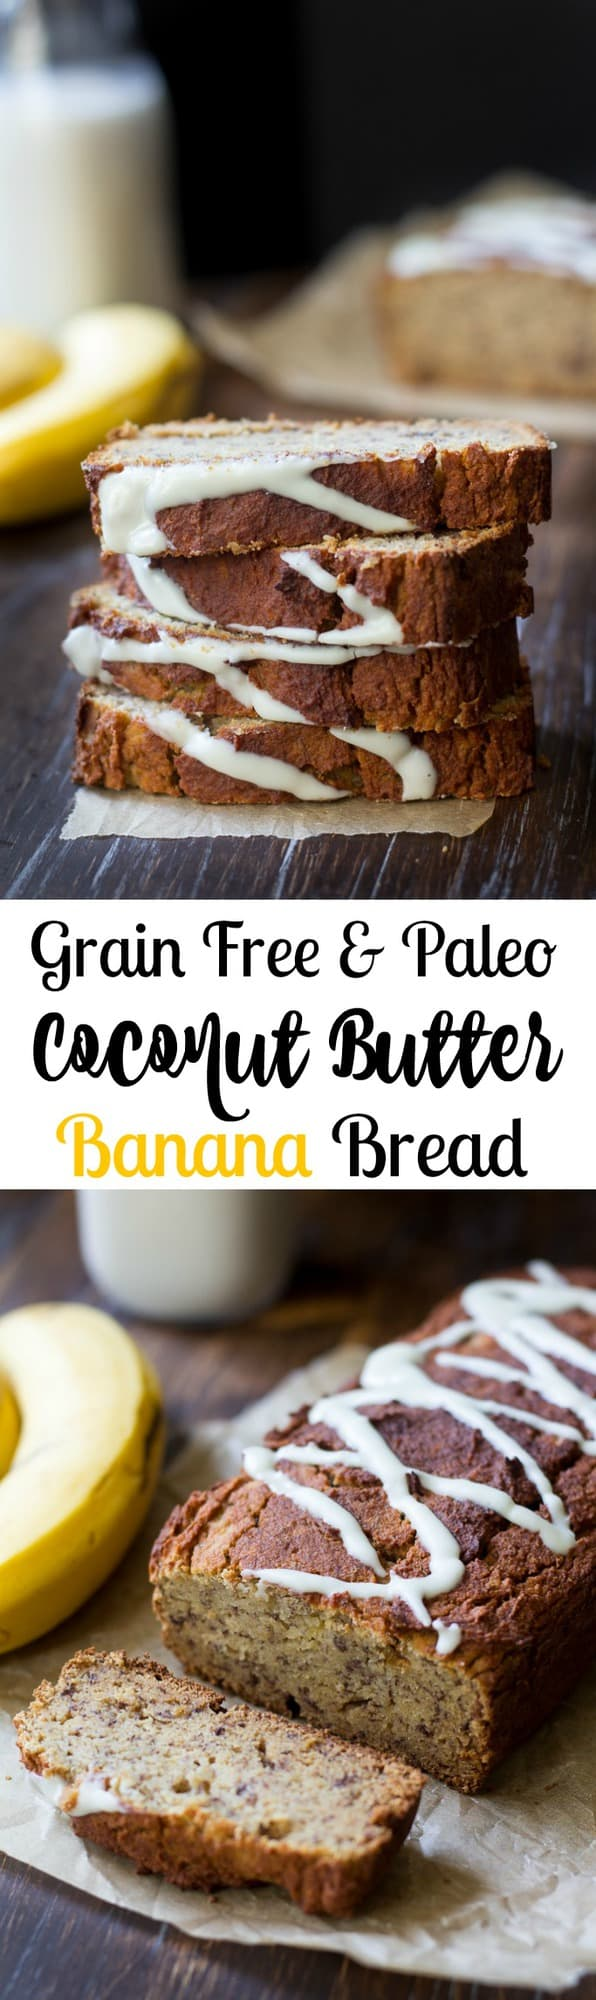 Grain free and paleo coconut butter banana bread that's so moist and sweet without any refined sugar